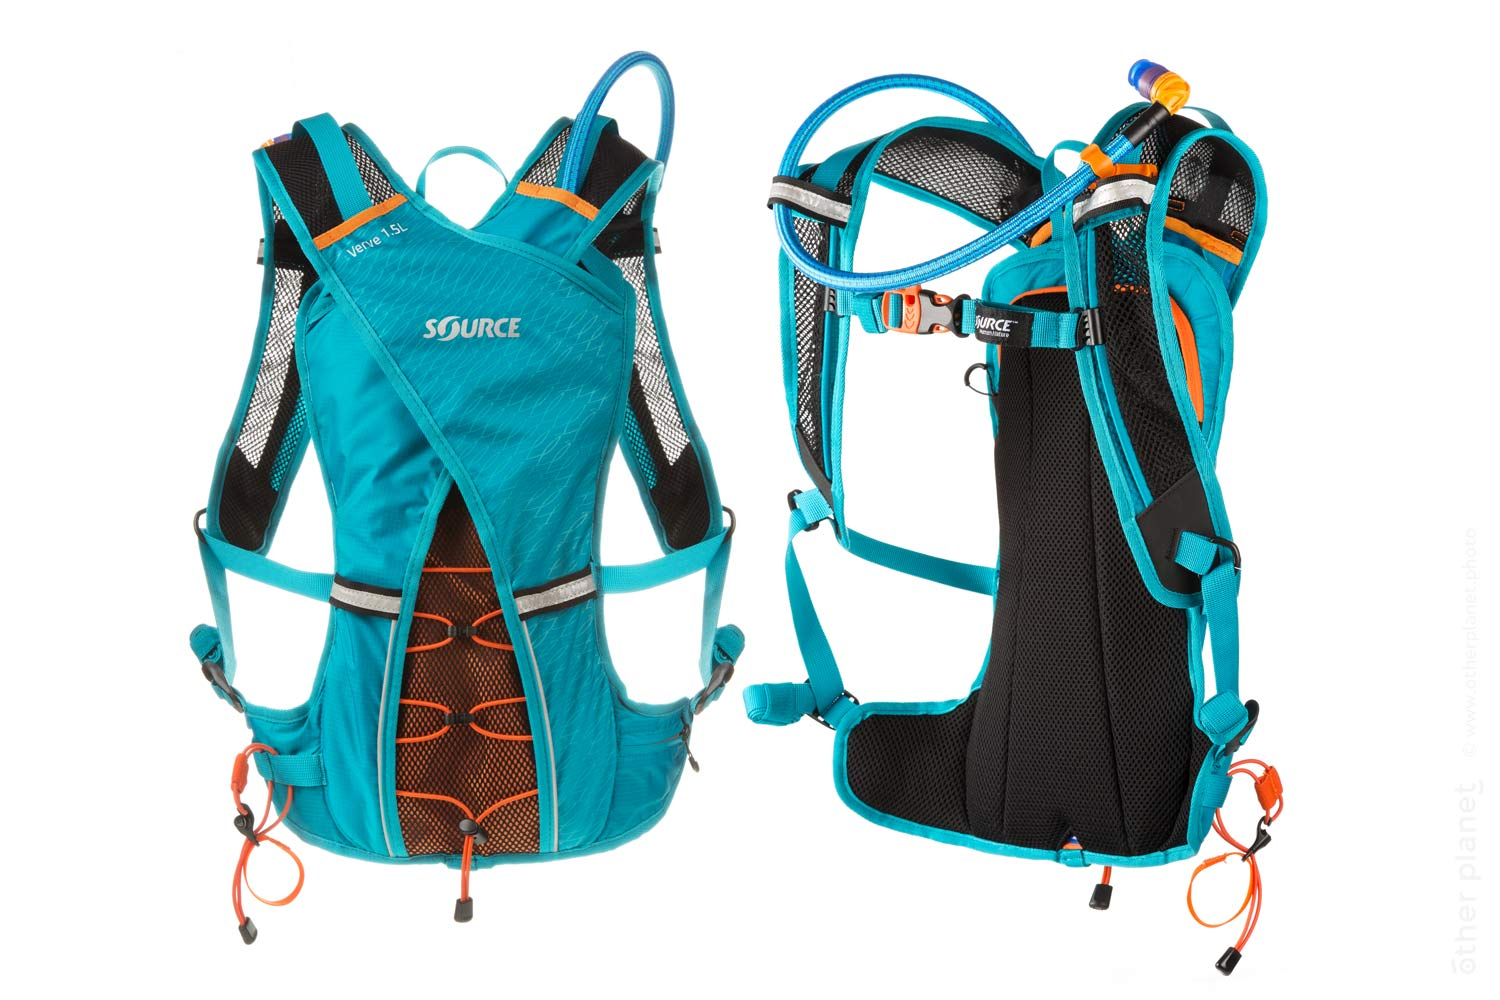 Source water backpack for traveling and cycling photo on white background